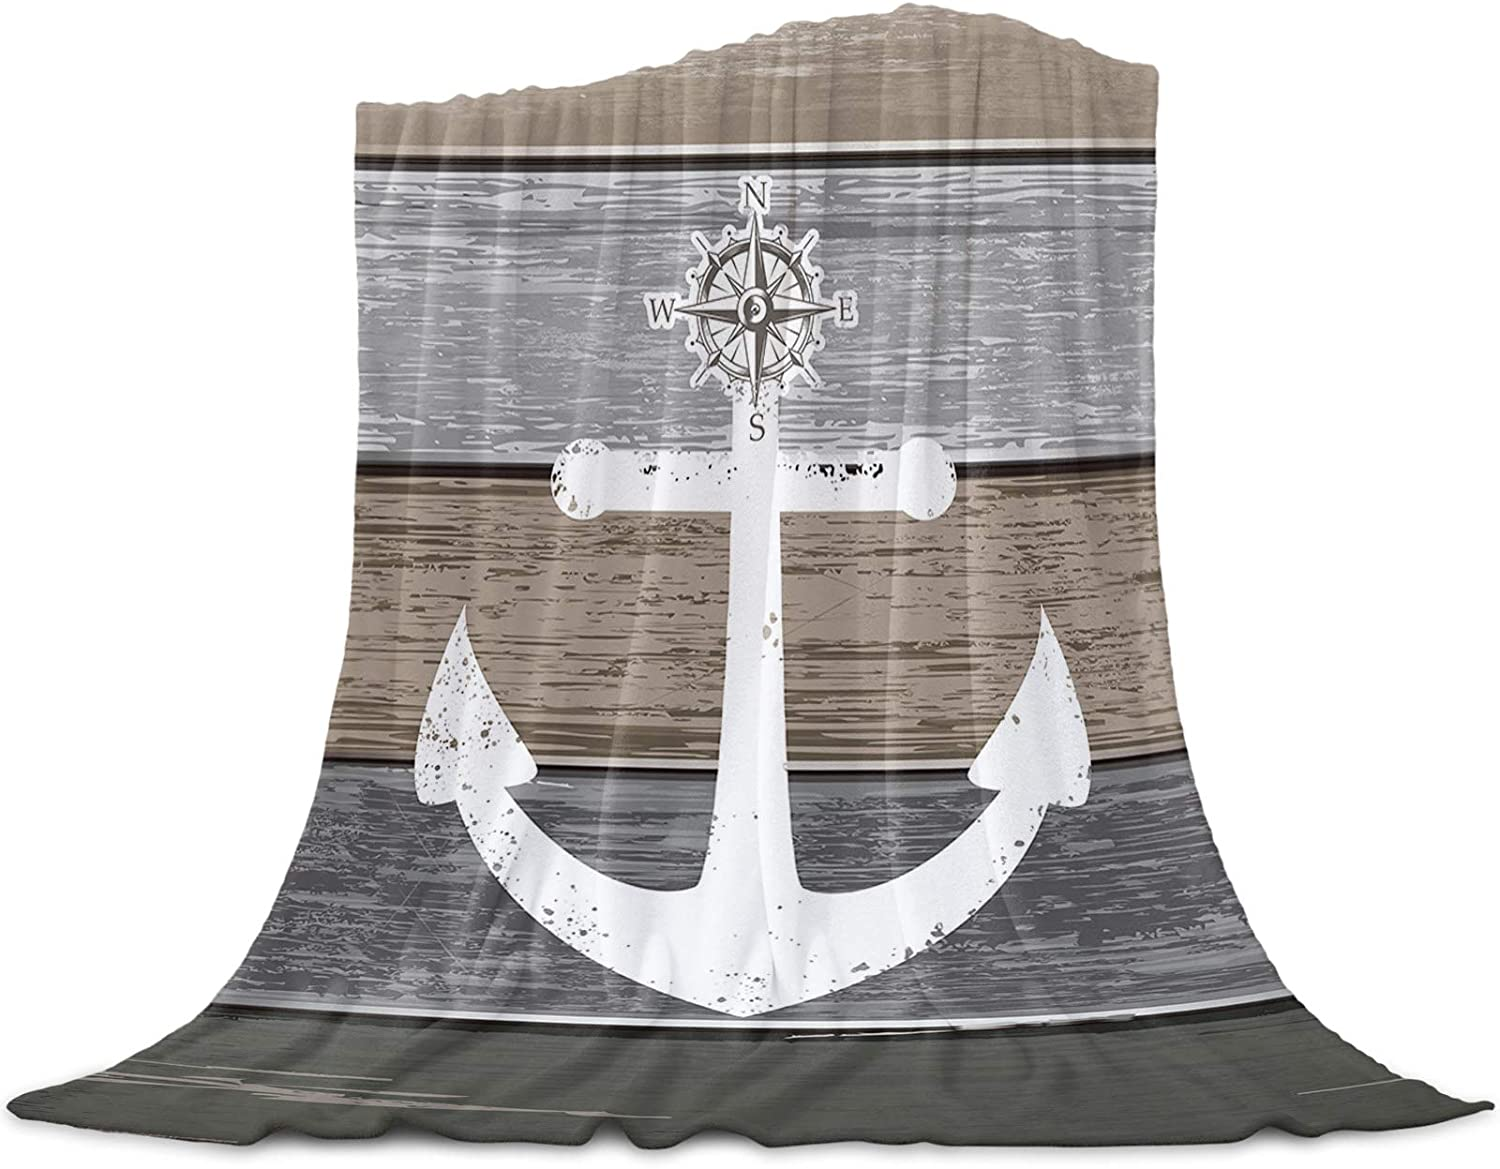 MAIANNE Vintage Wooden Plank Ombre Grey Soft Throw Blankets Fluffy Fuzzy Flannel Bed Blanket Decorative for Home Sofa Couch Chair Living Bedroom Nautical Ocean 40x50 inches